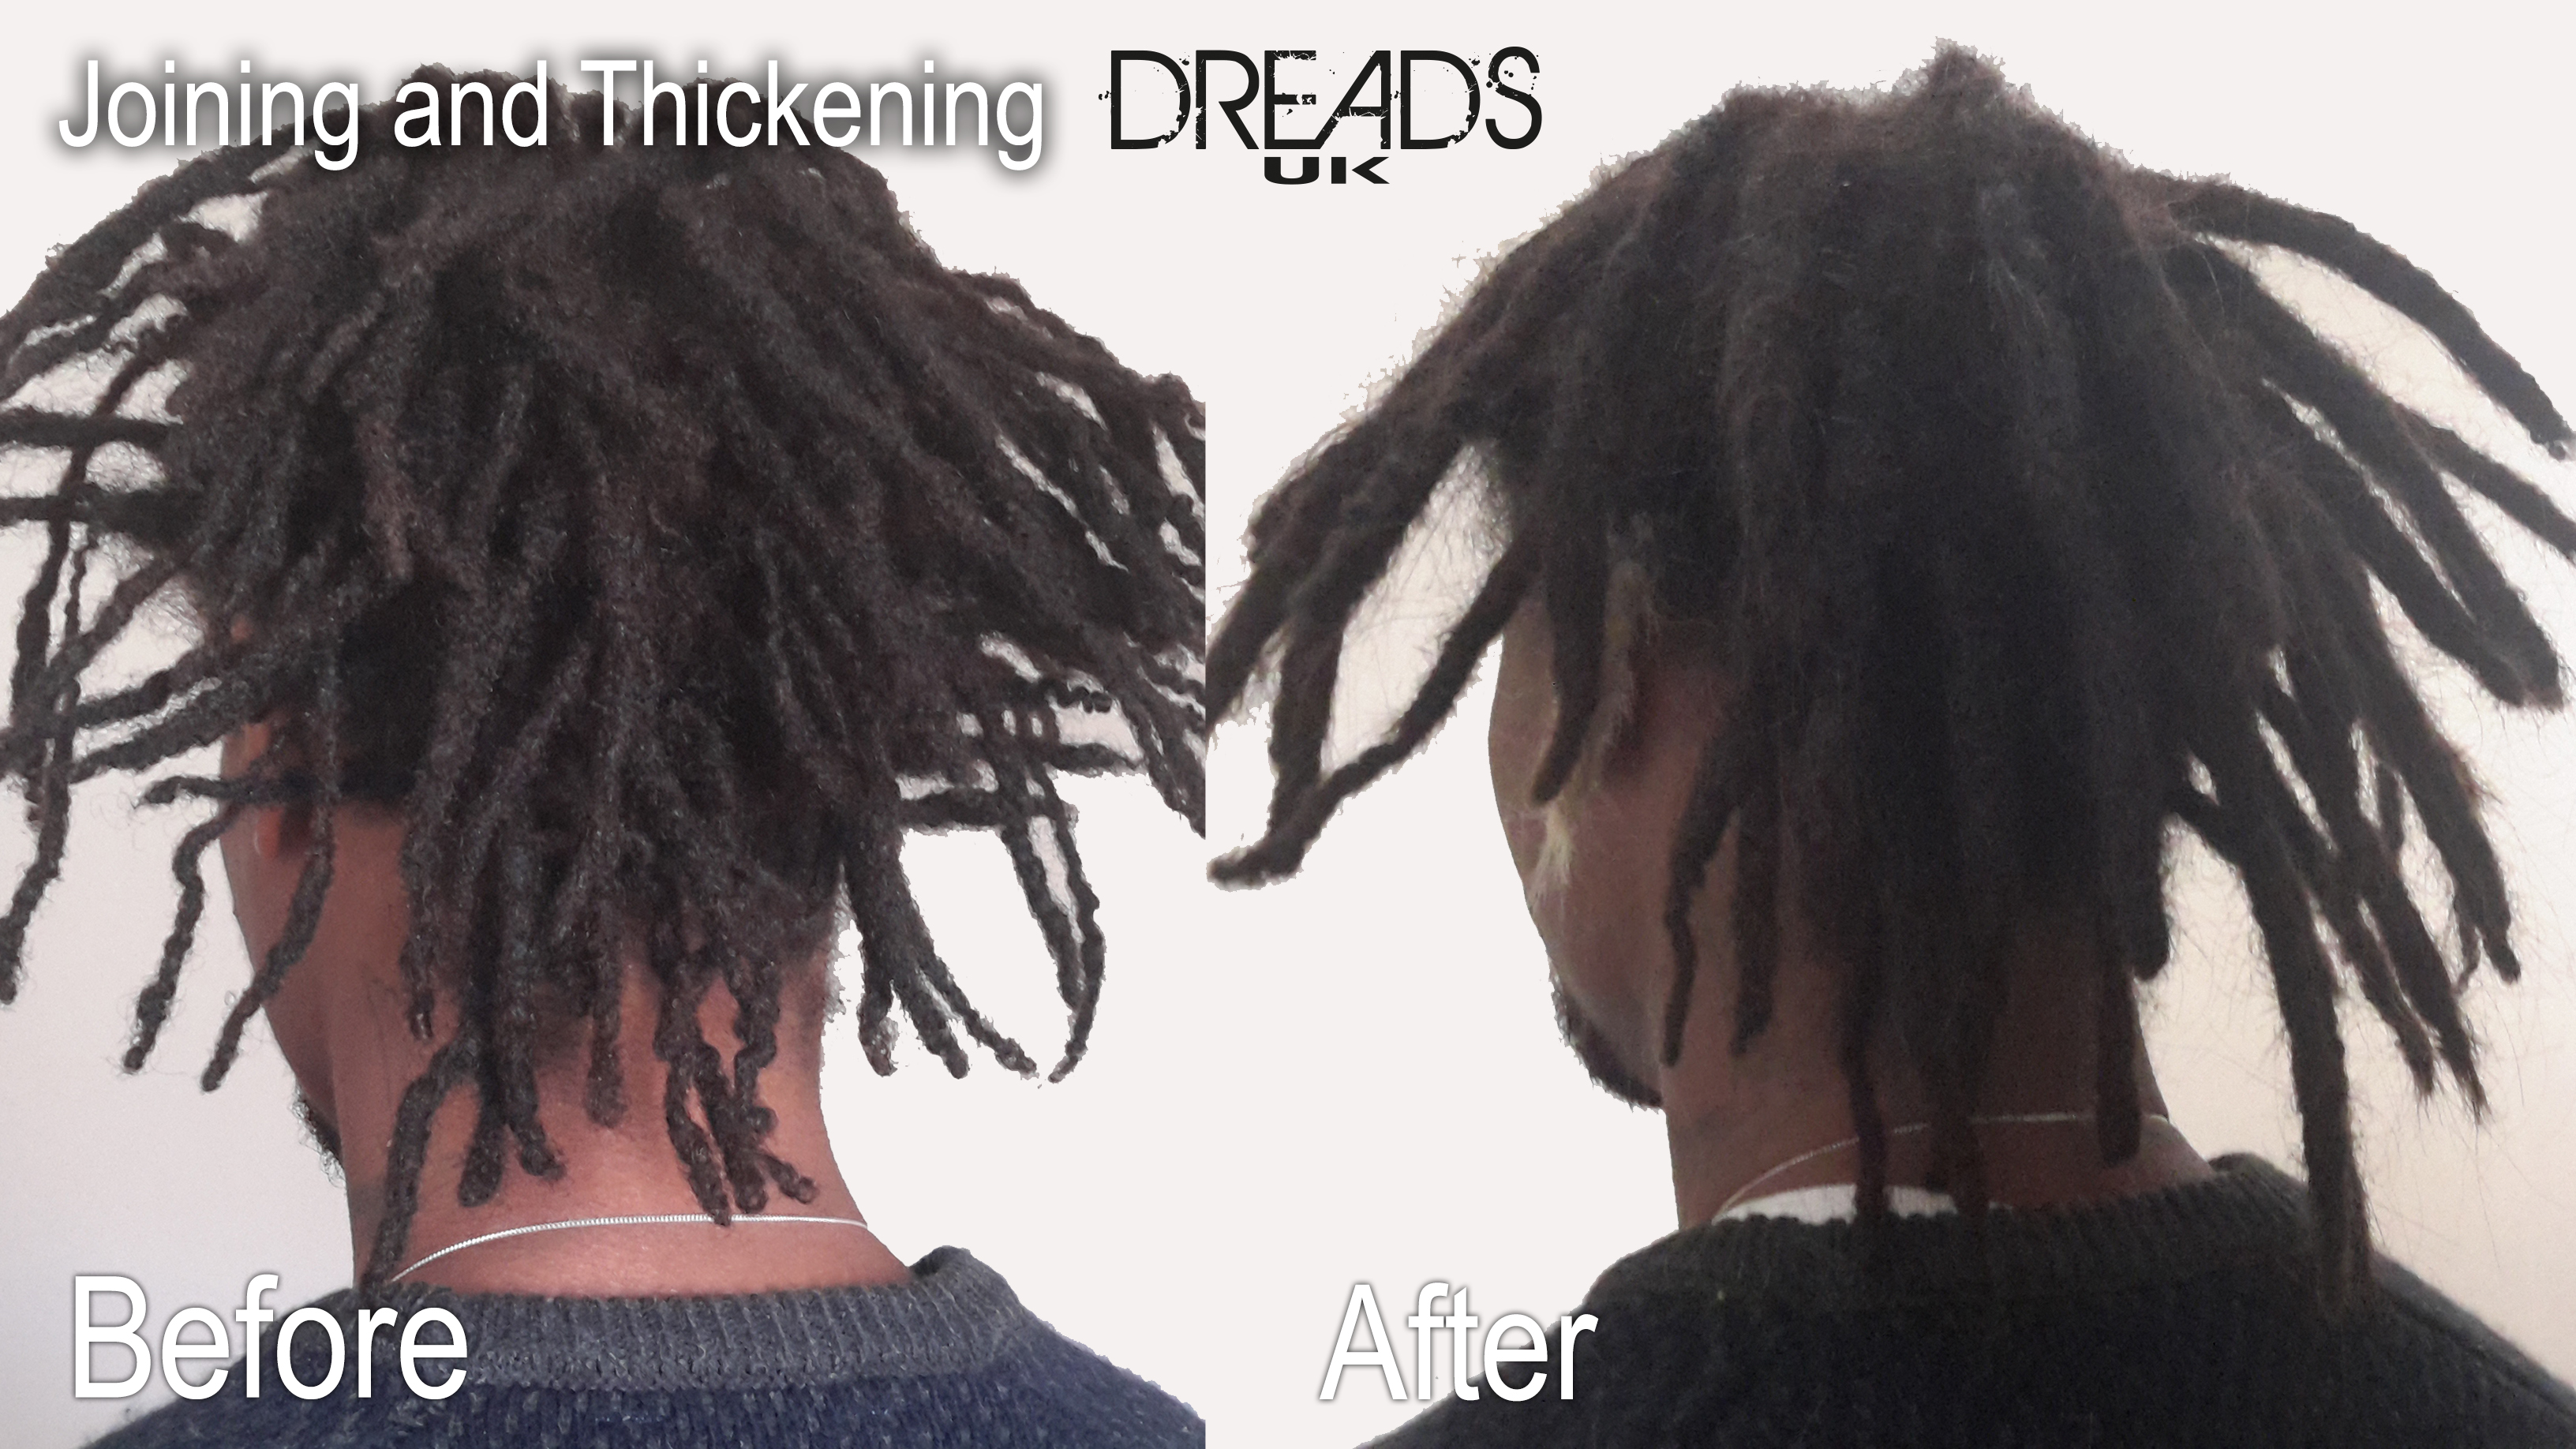 How To Join Two Dreads Into One Dreads Uk Dreads Uk